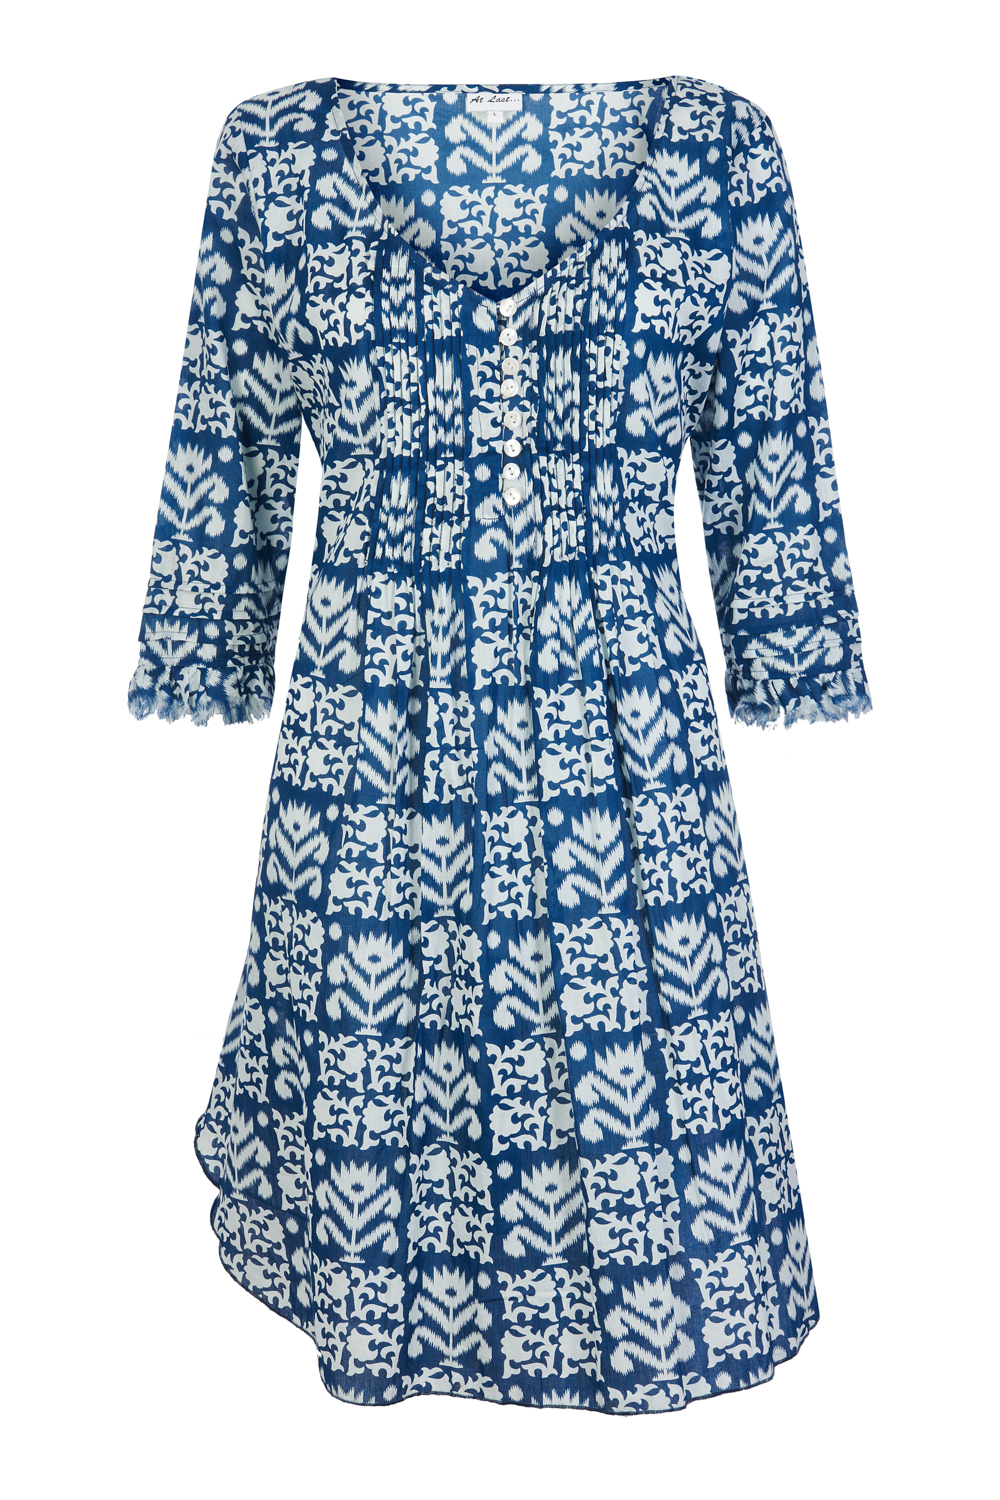 At Last Annabel No Frill - Navy and White Ikat 922afe4a0